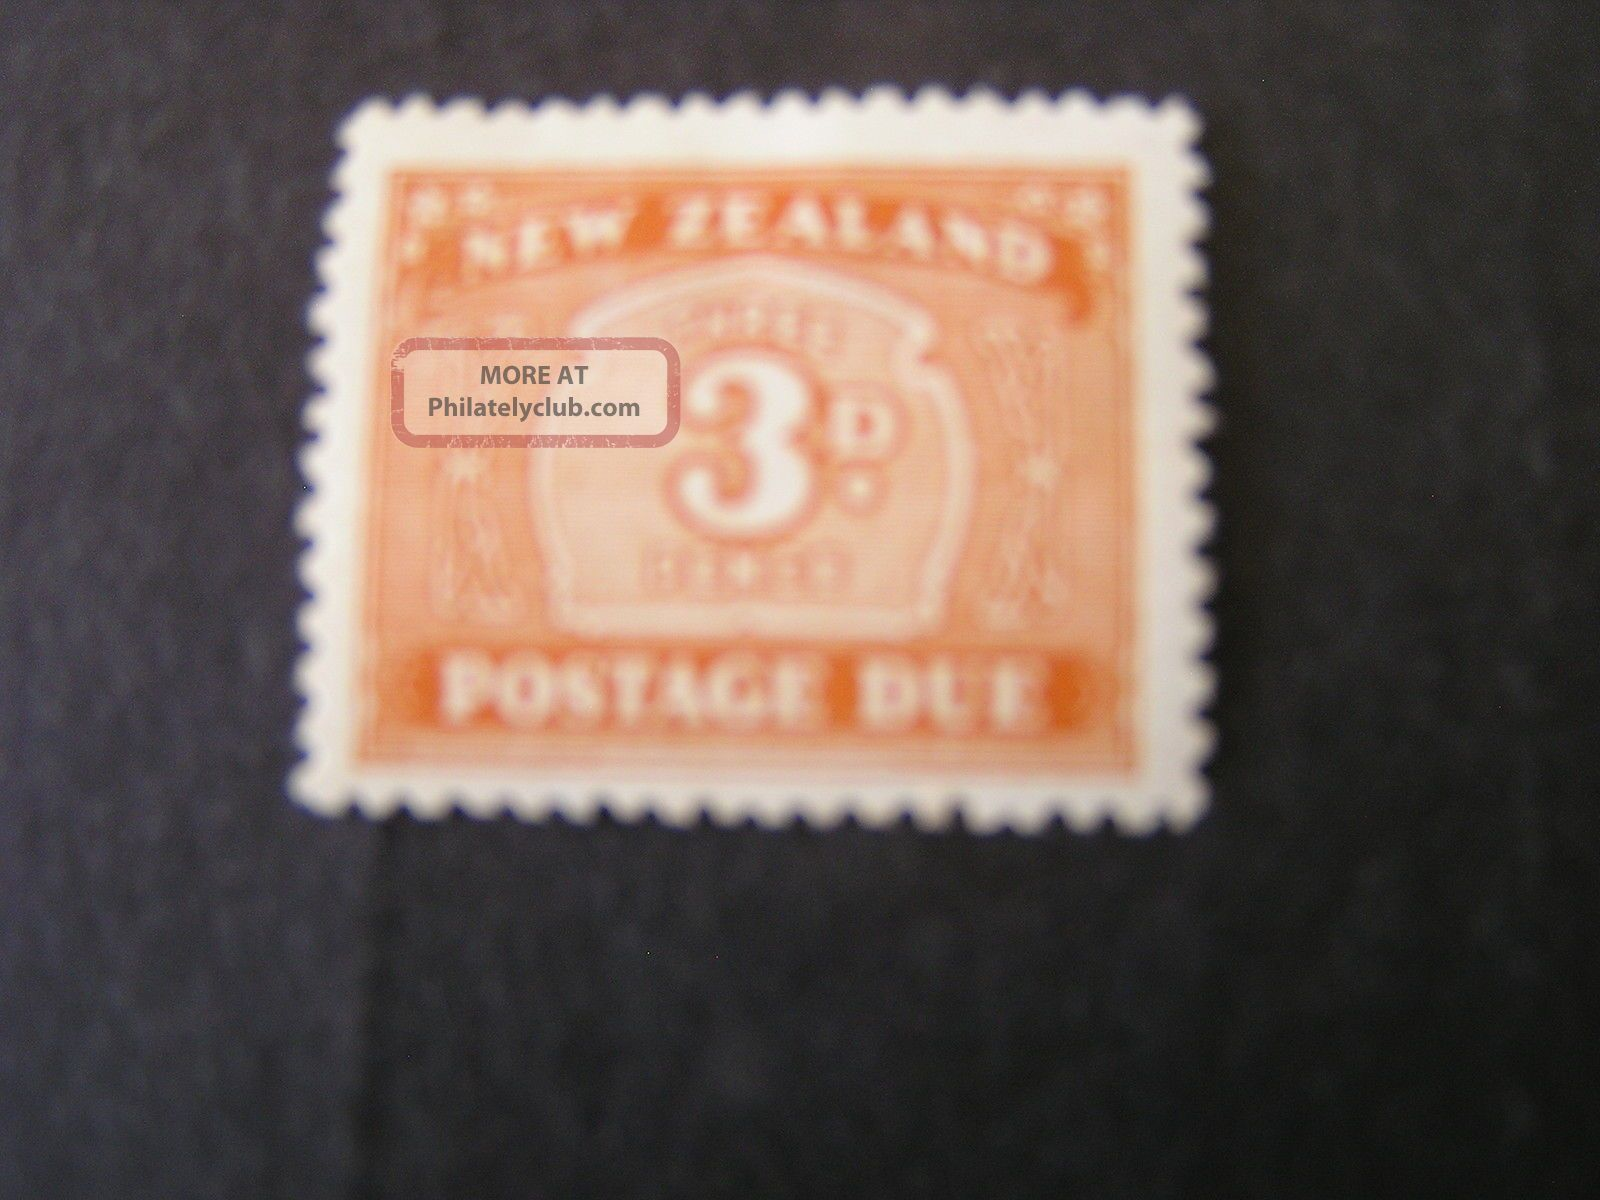 Zealand,  Scott J25,  3p.  Value Brown Orange 1939 Postage Due Issue.  Mh Australia & Oceania photo